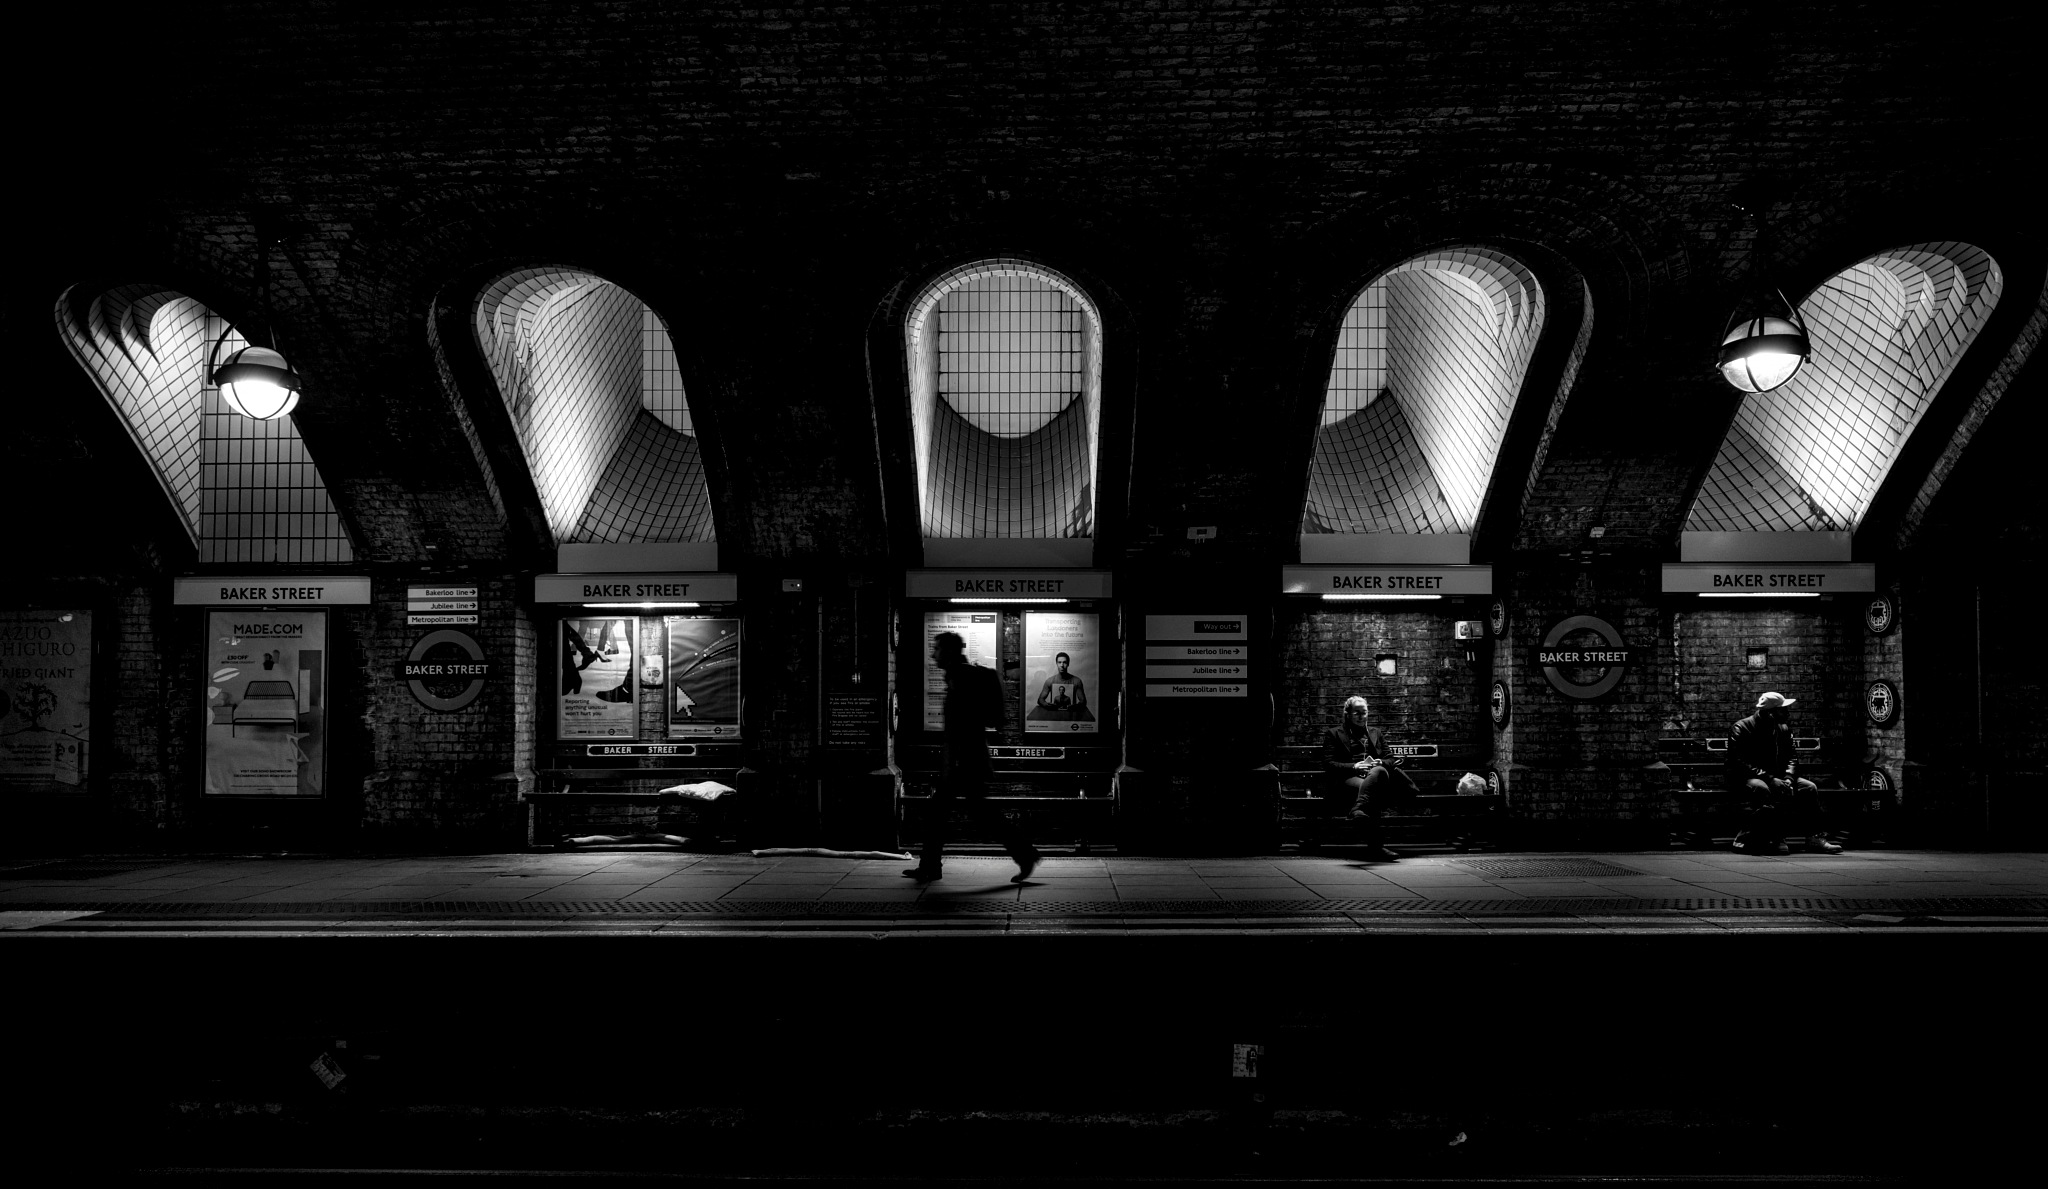 Baker Street Shadows by rickyban_Photography